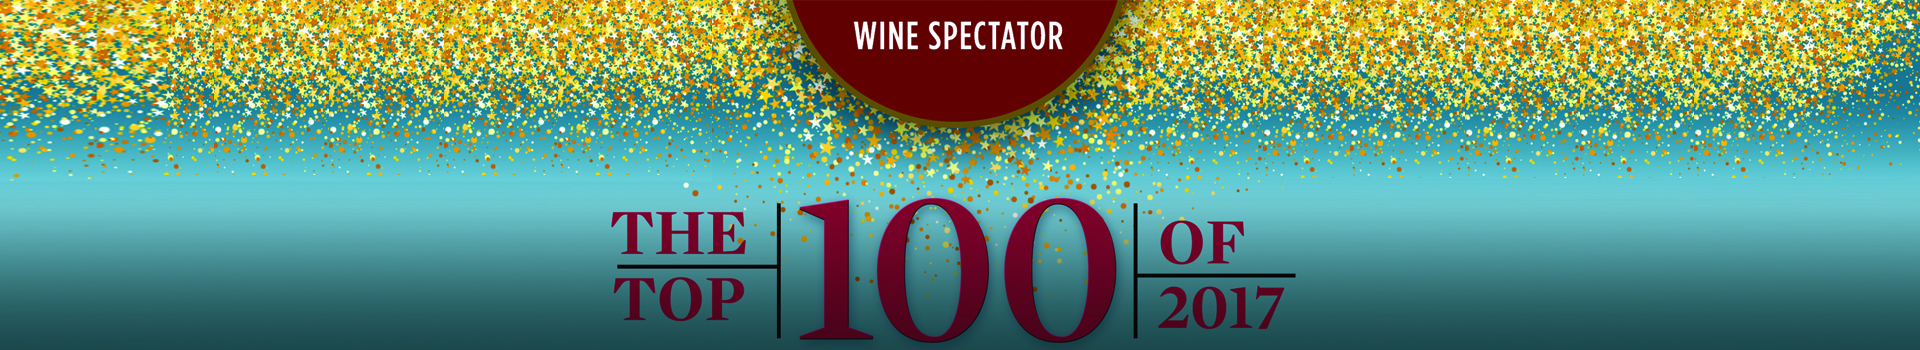 FEUDI DEL PISCIOTTO NERO D'AVOLA 2015 IN THE WINE SPECTATOR'S TOP 100